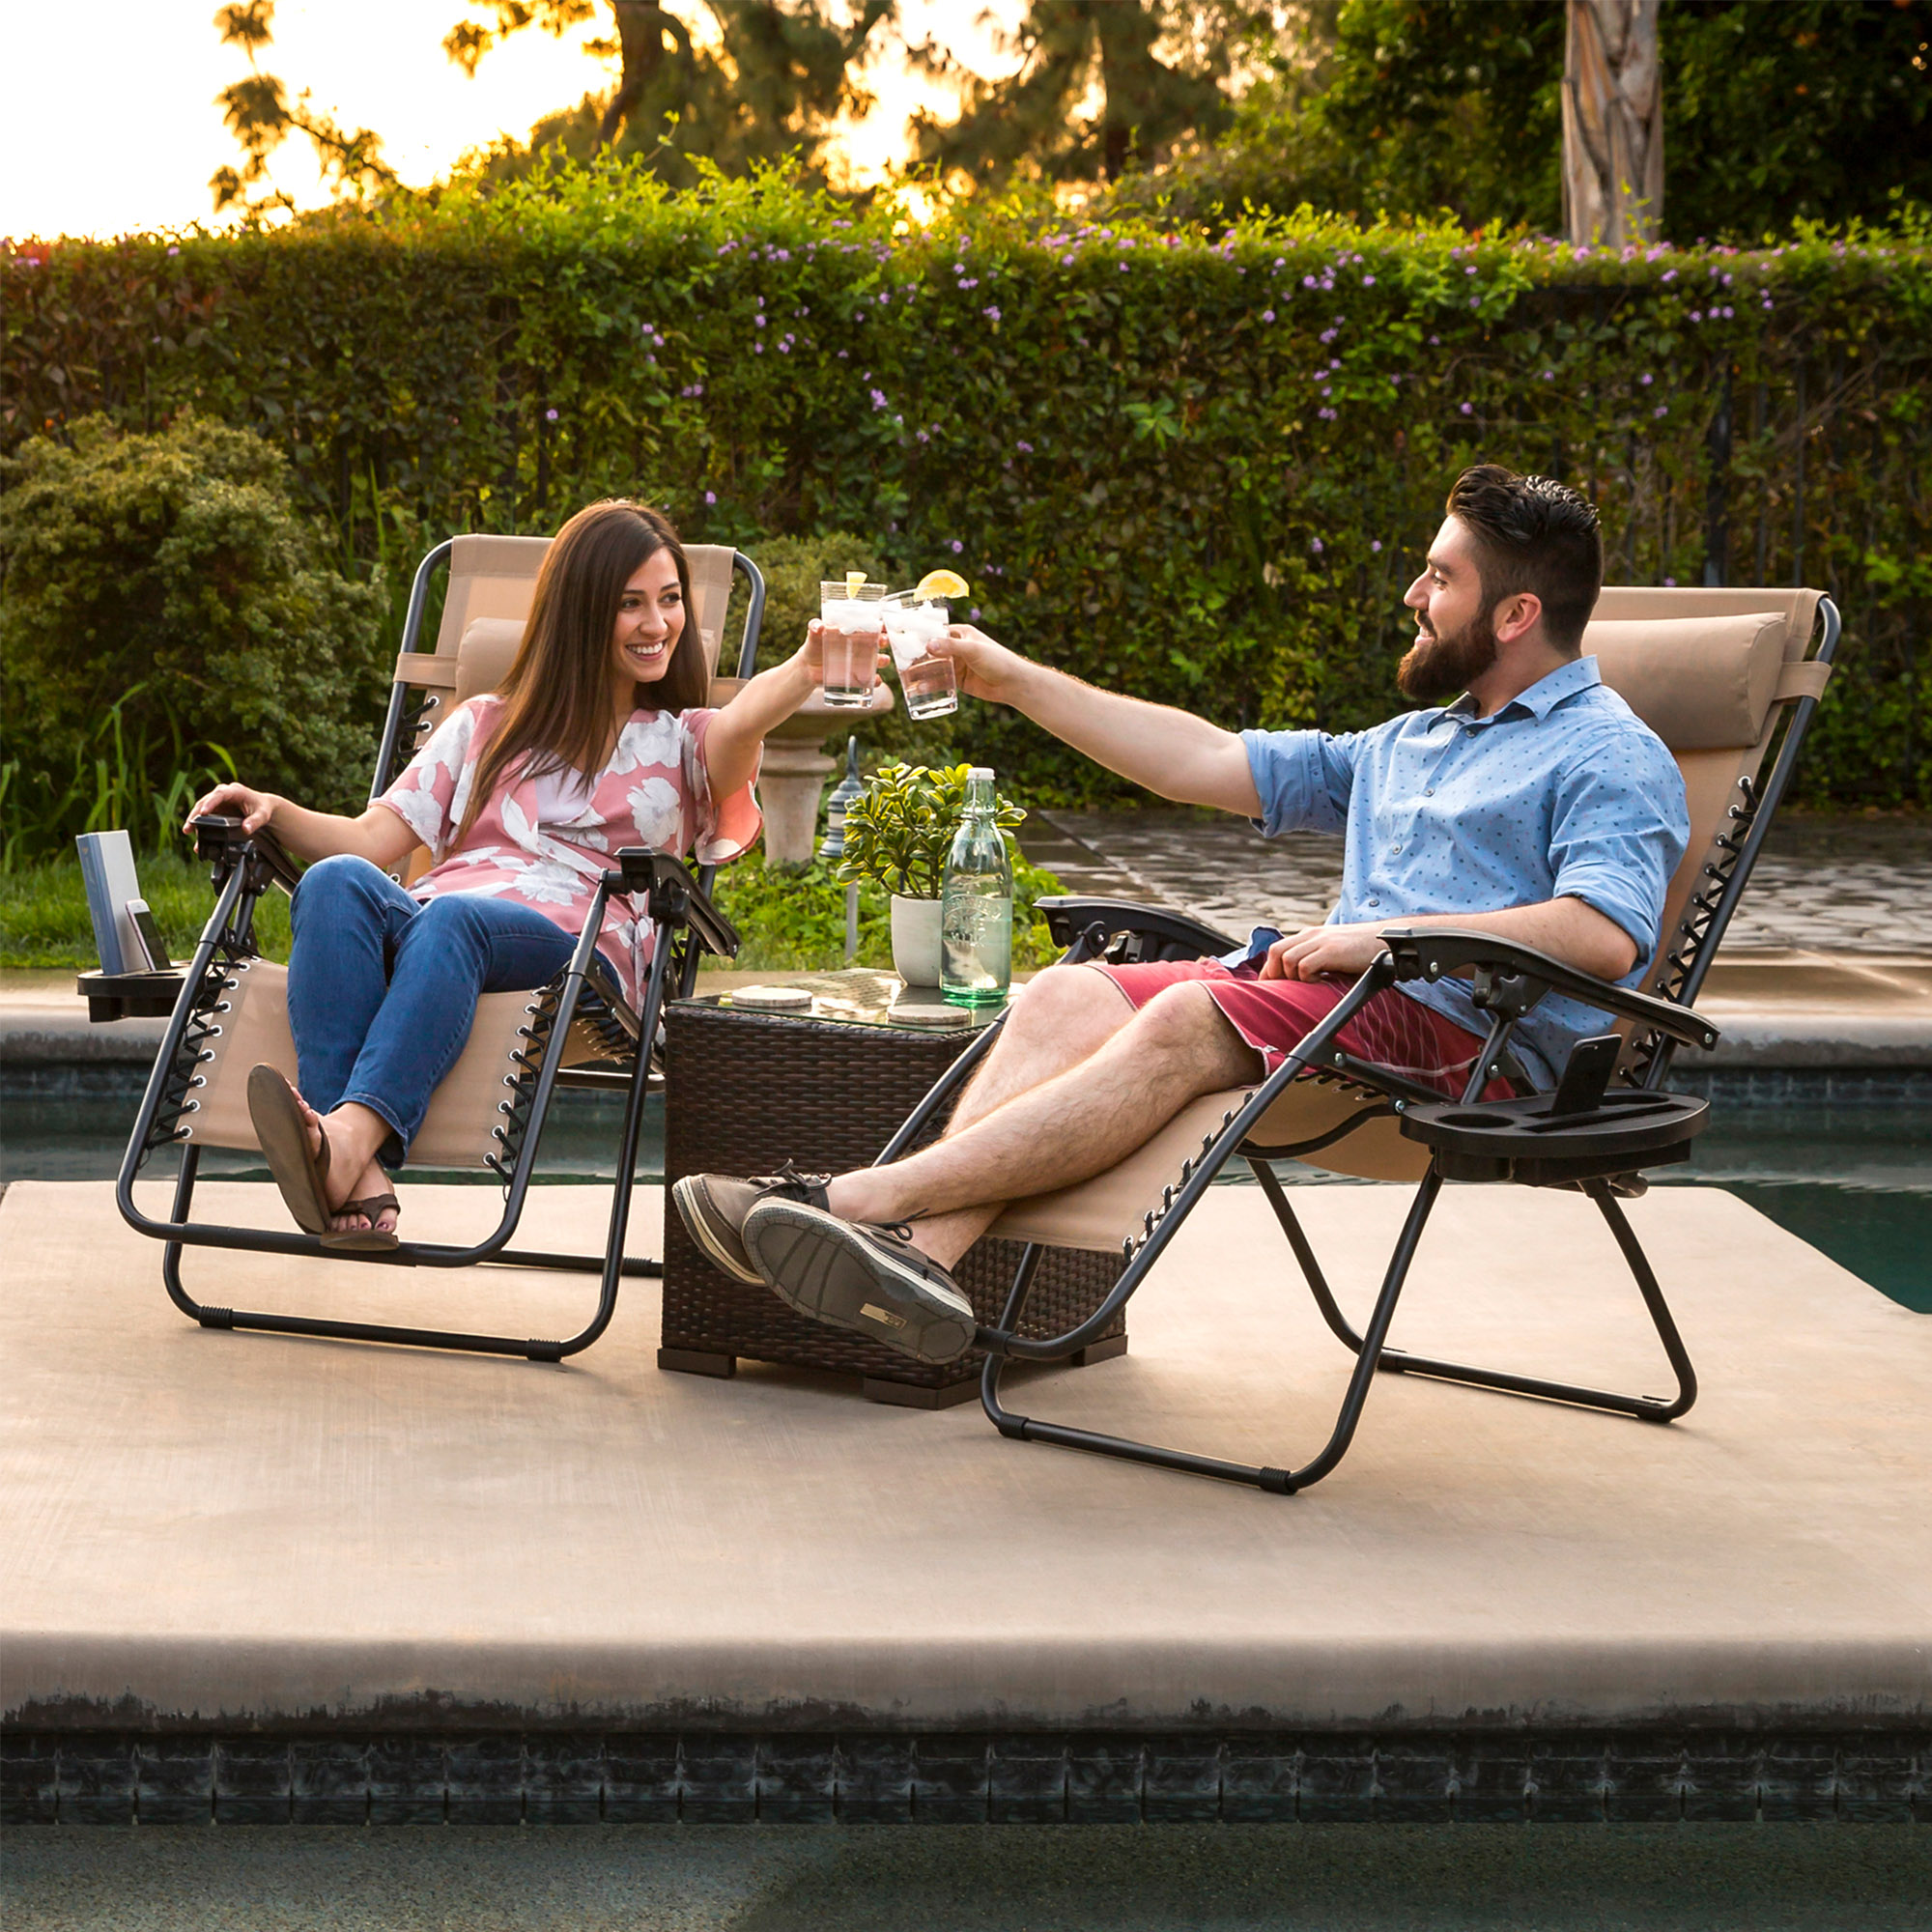 BCP-Set-of-2-Adjustable-Zero-Gravity-Patio-Chair-Recliners-w-Cup-Holders thumbnail 9